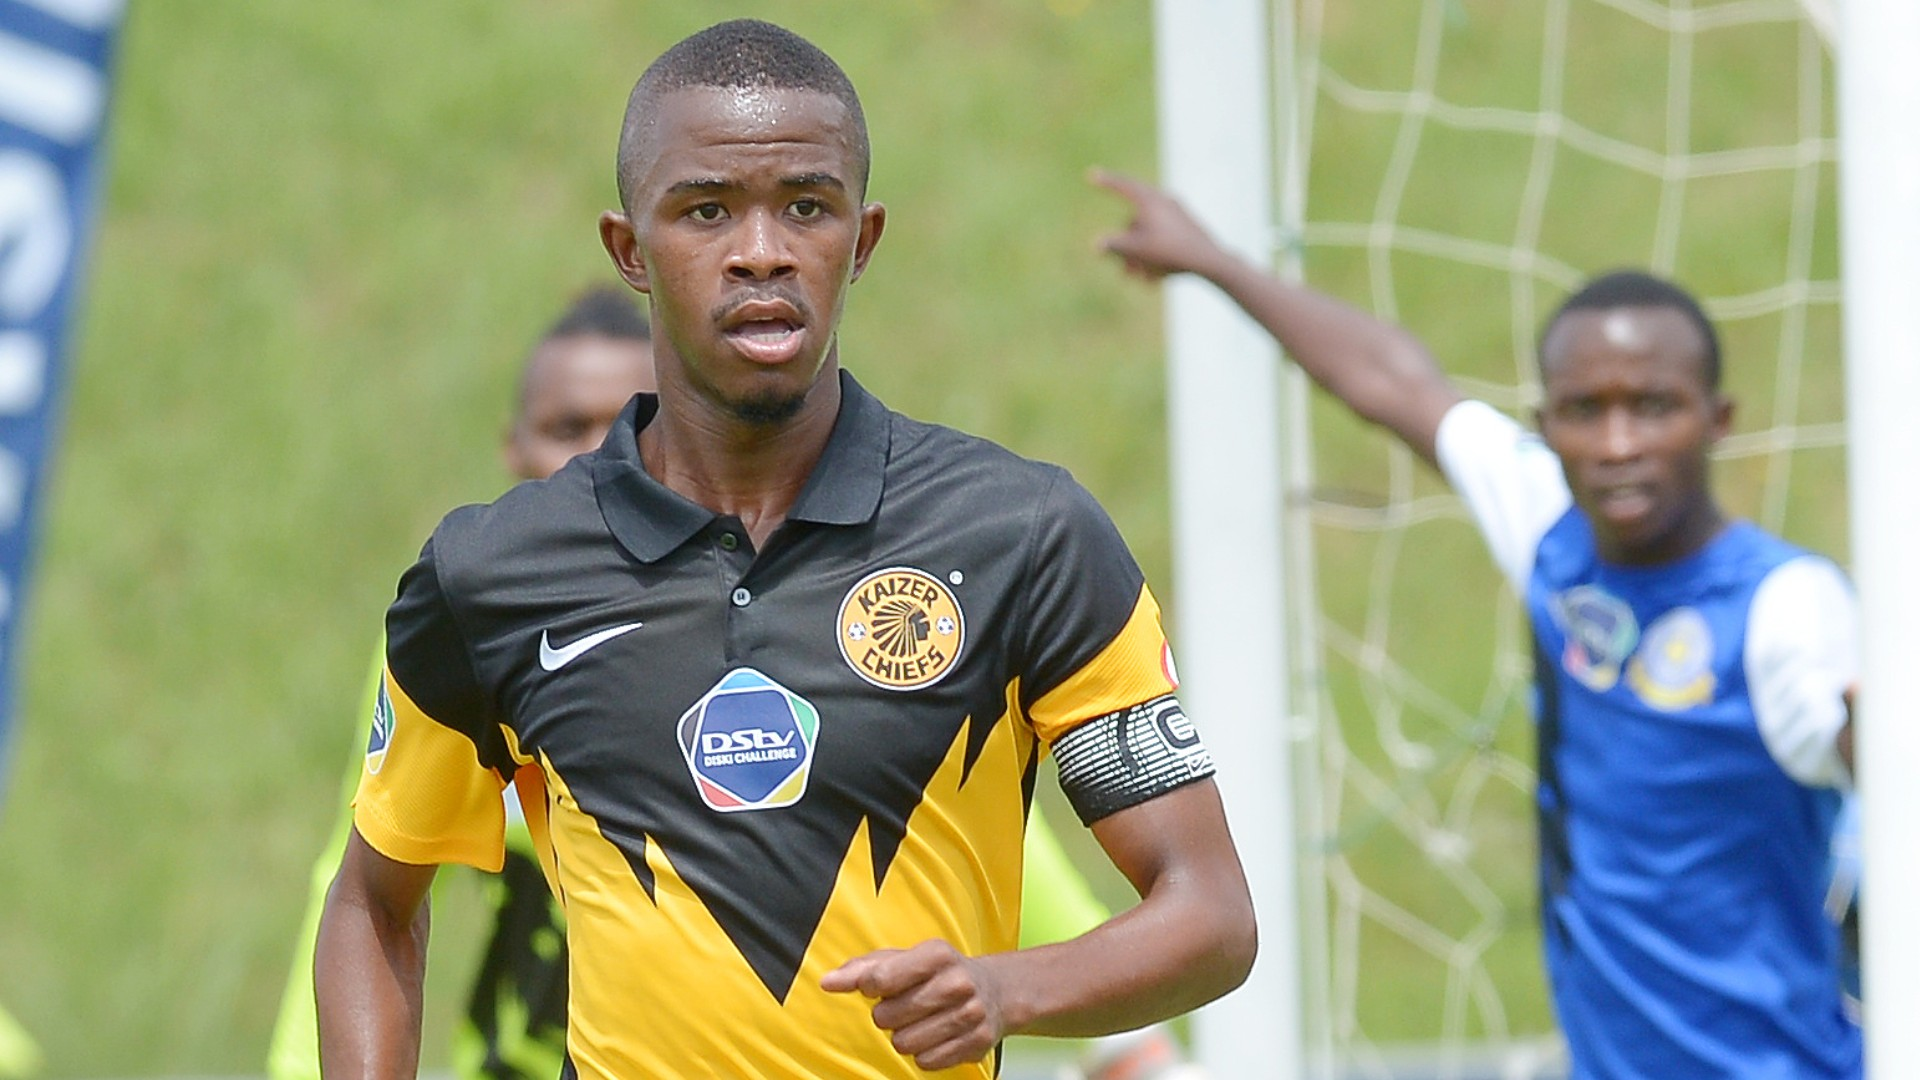 'Radebe was all over the place like a headless chicken' - Kaizer Chiefs' Baxter